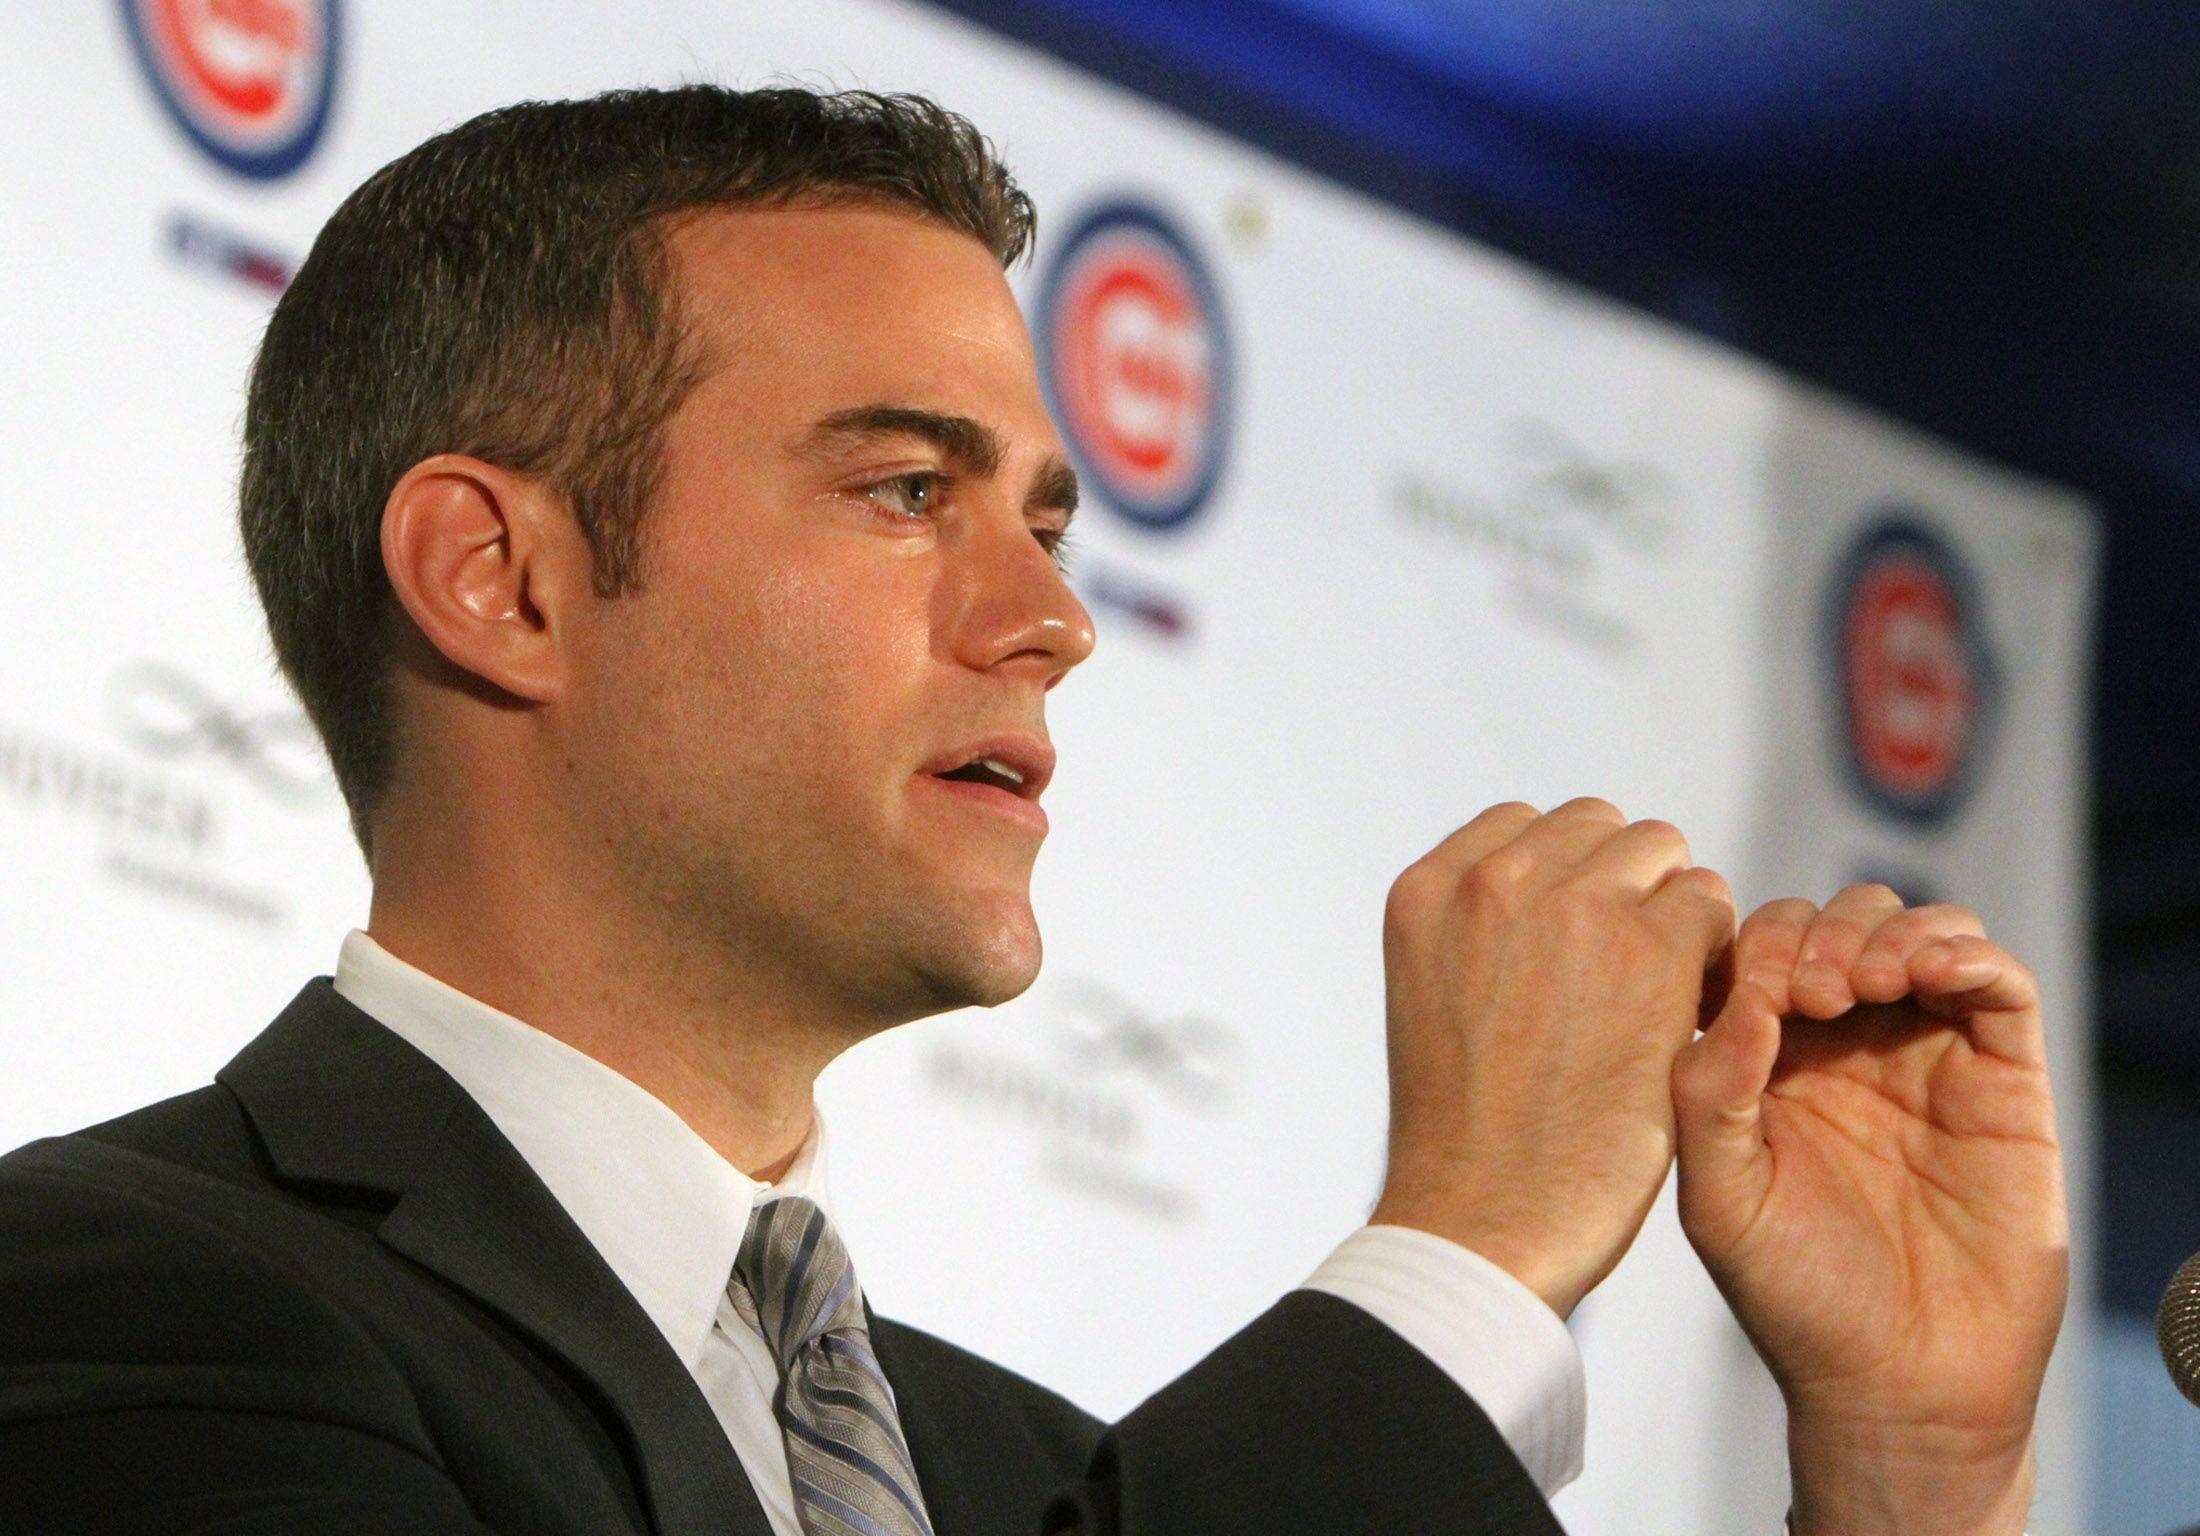 Cubs president of baseball operations Theo Epstein is in charge of all personnel decisions, according to team chairman Tom Ricketts.